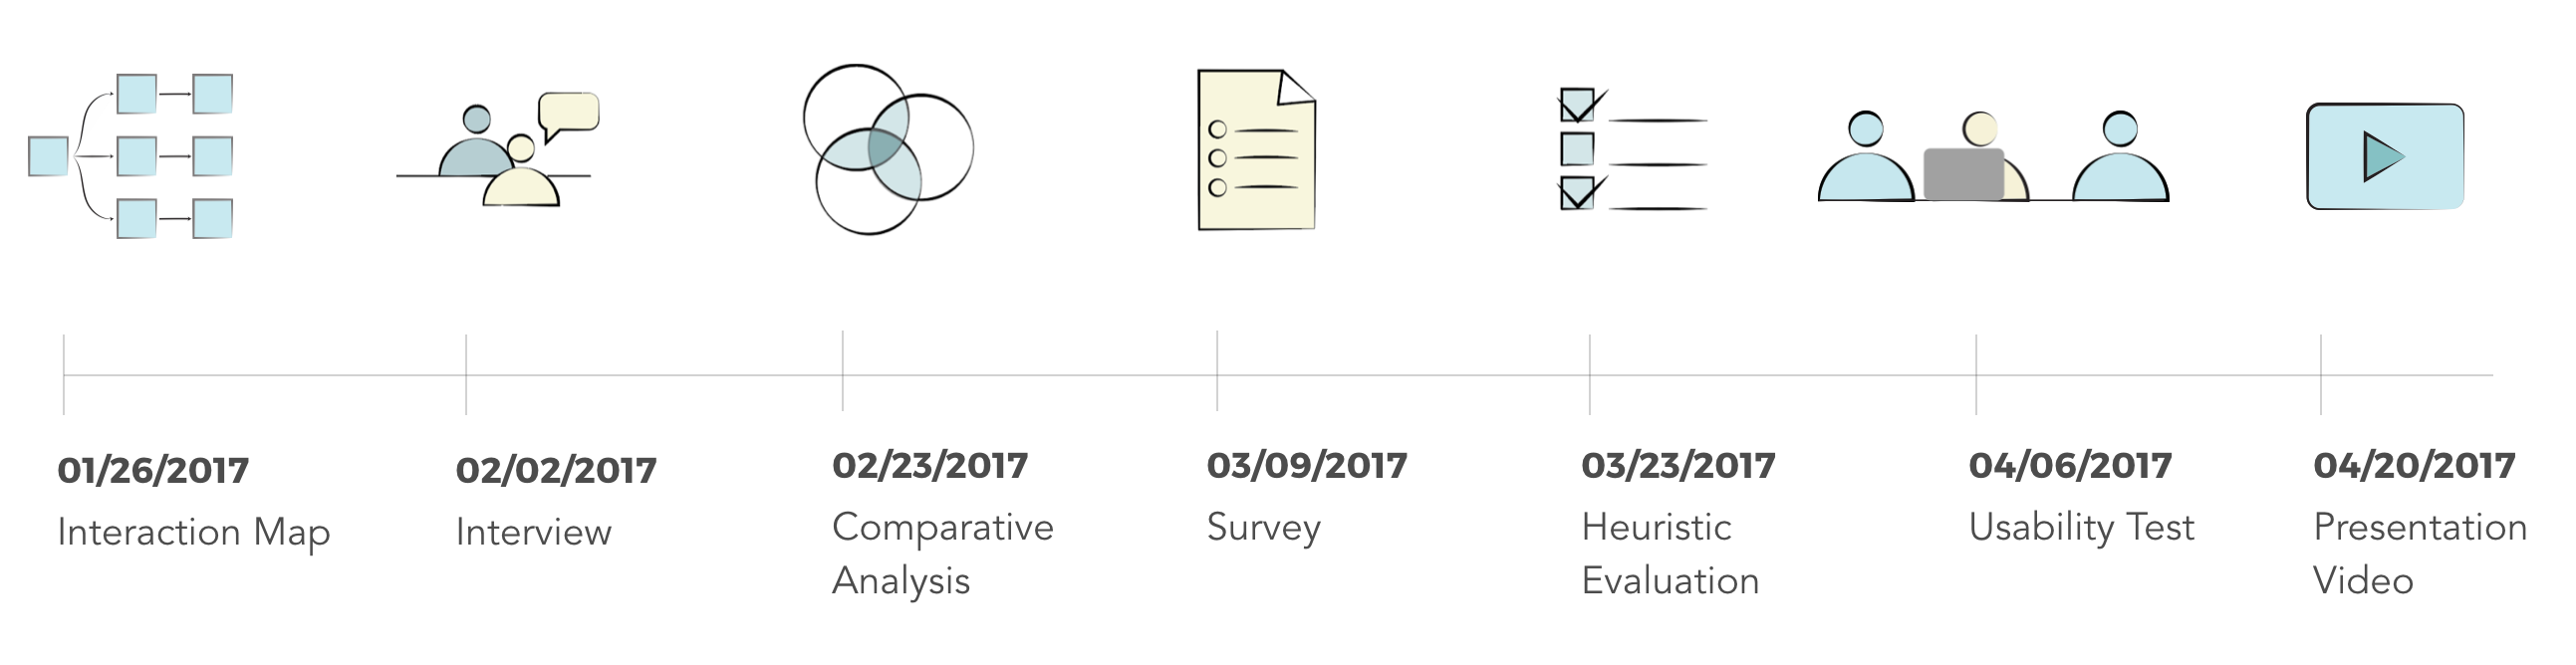 GE UX Research: Timeline